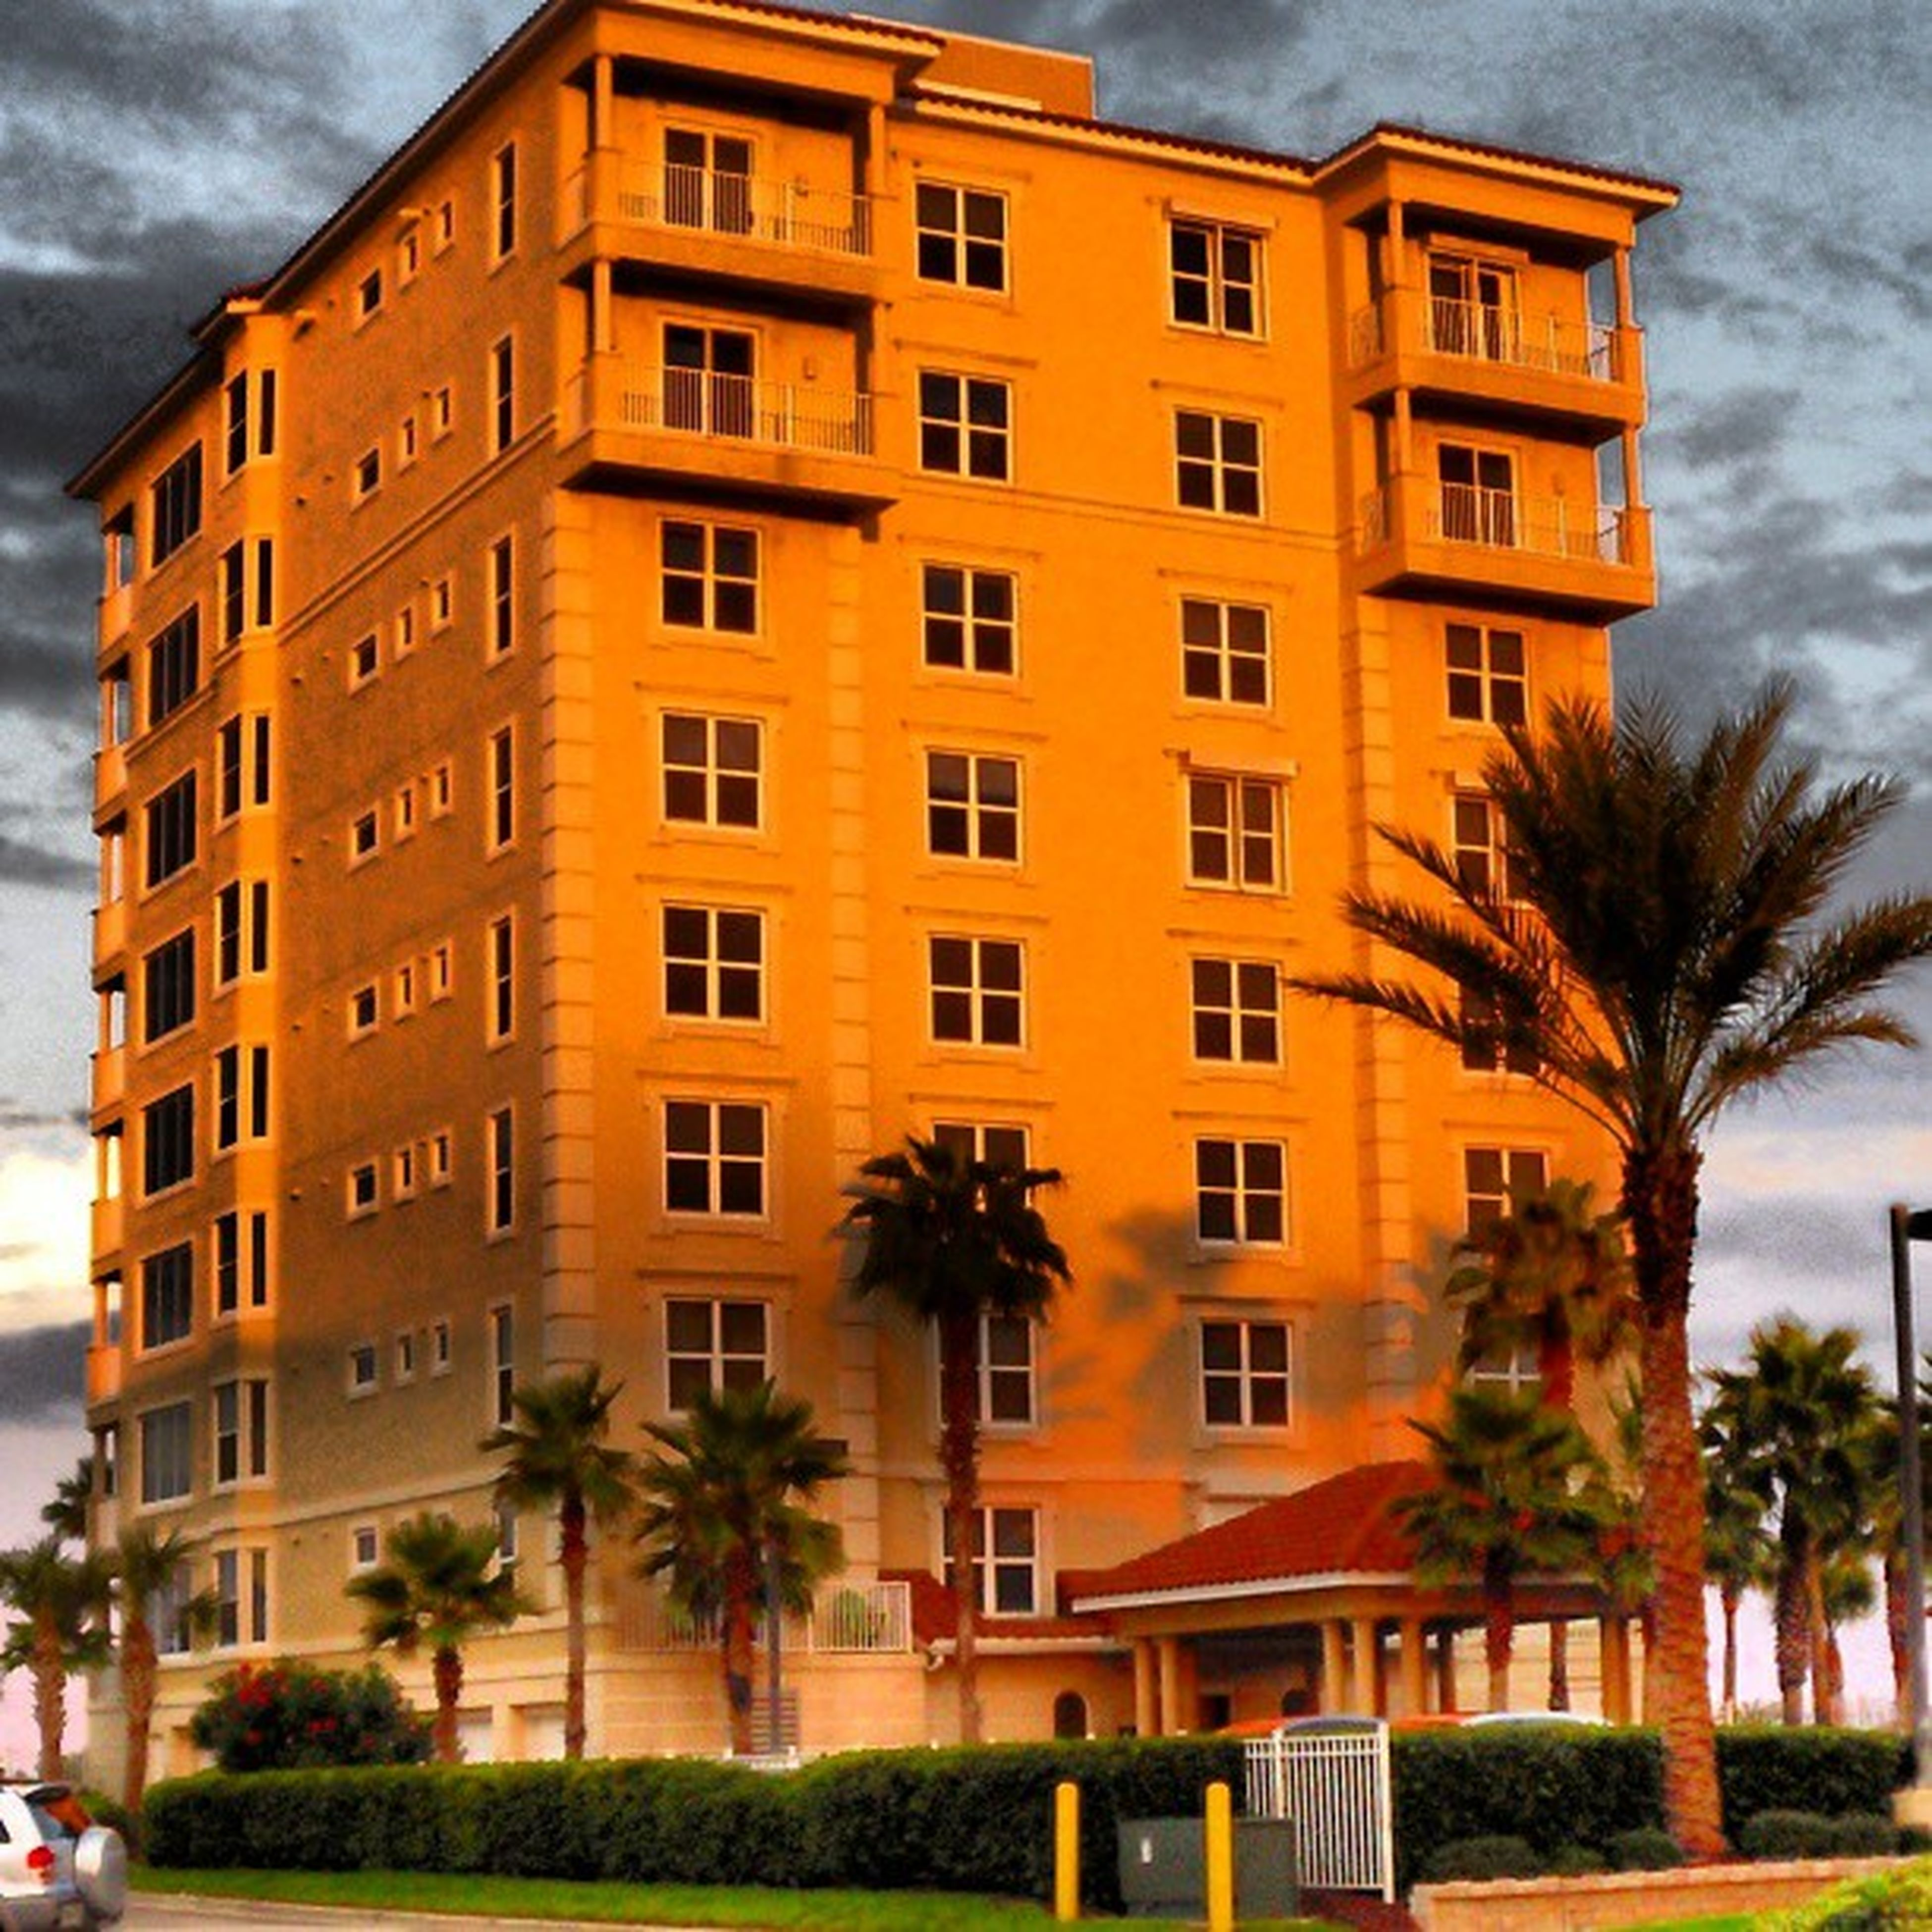 building exterior, architecture, built structure, tree, window, sky, building, city, residential building, residential structure, facade, low angle view, outdoors, day, growth, no people, incidental people, house, cloud - sky, lawn